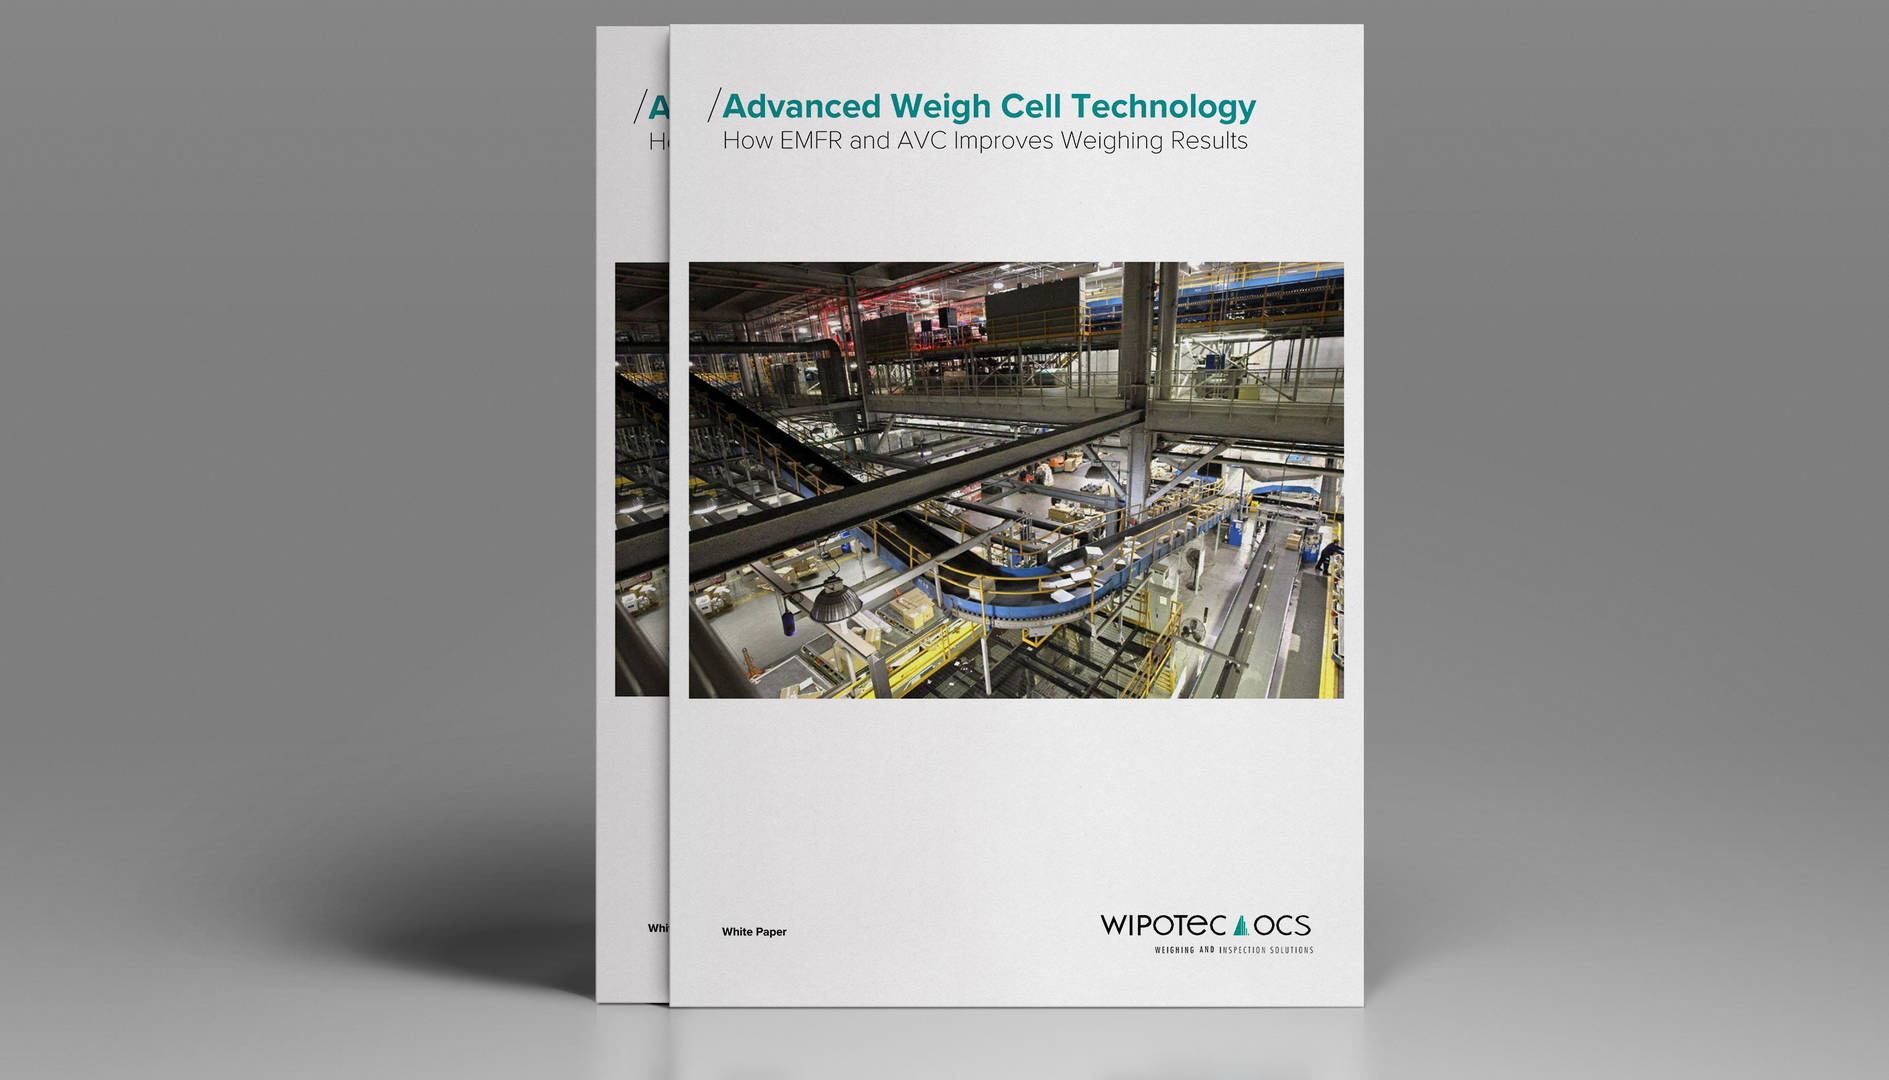 Advanced Weigh Cell Technology